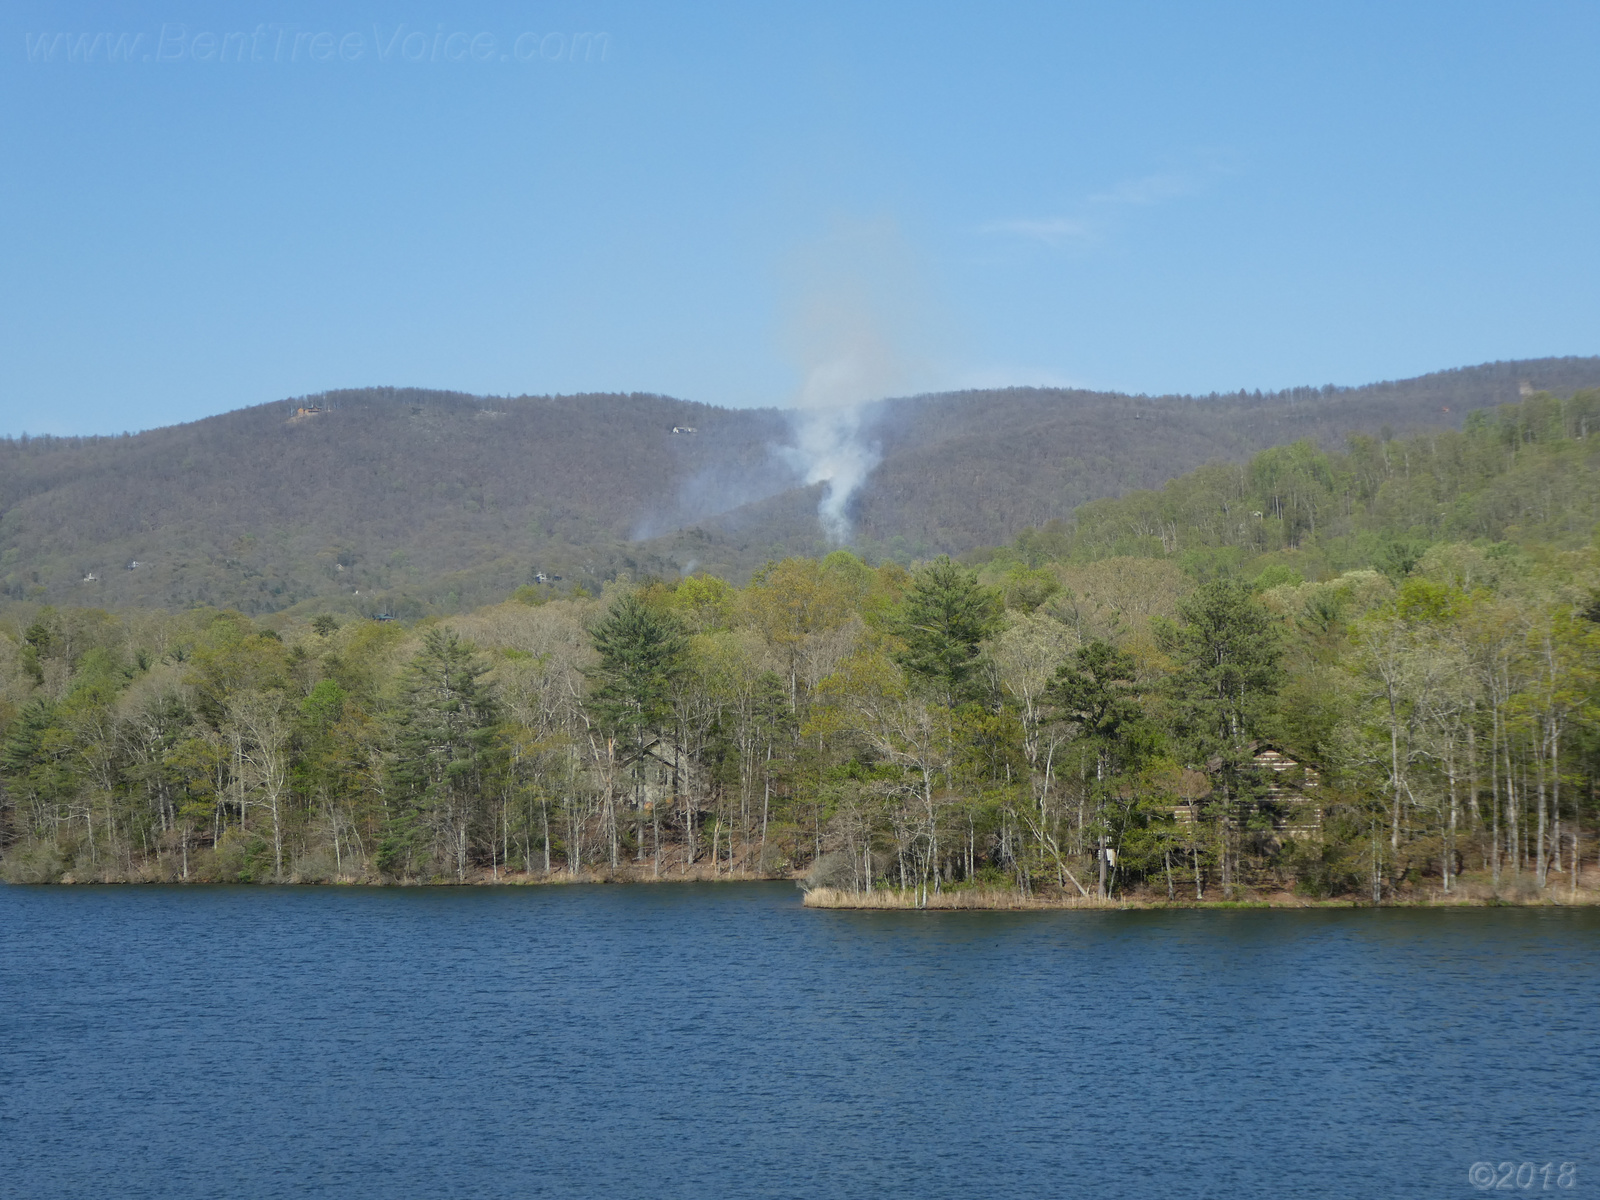 April 18, 2018 - smoke rising from the brush fire in Bent Tree